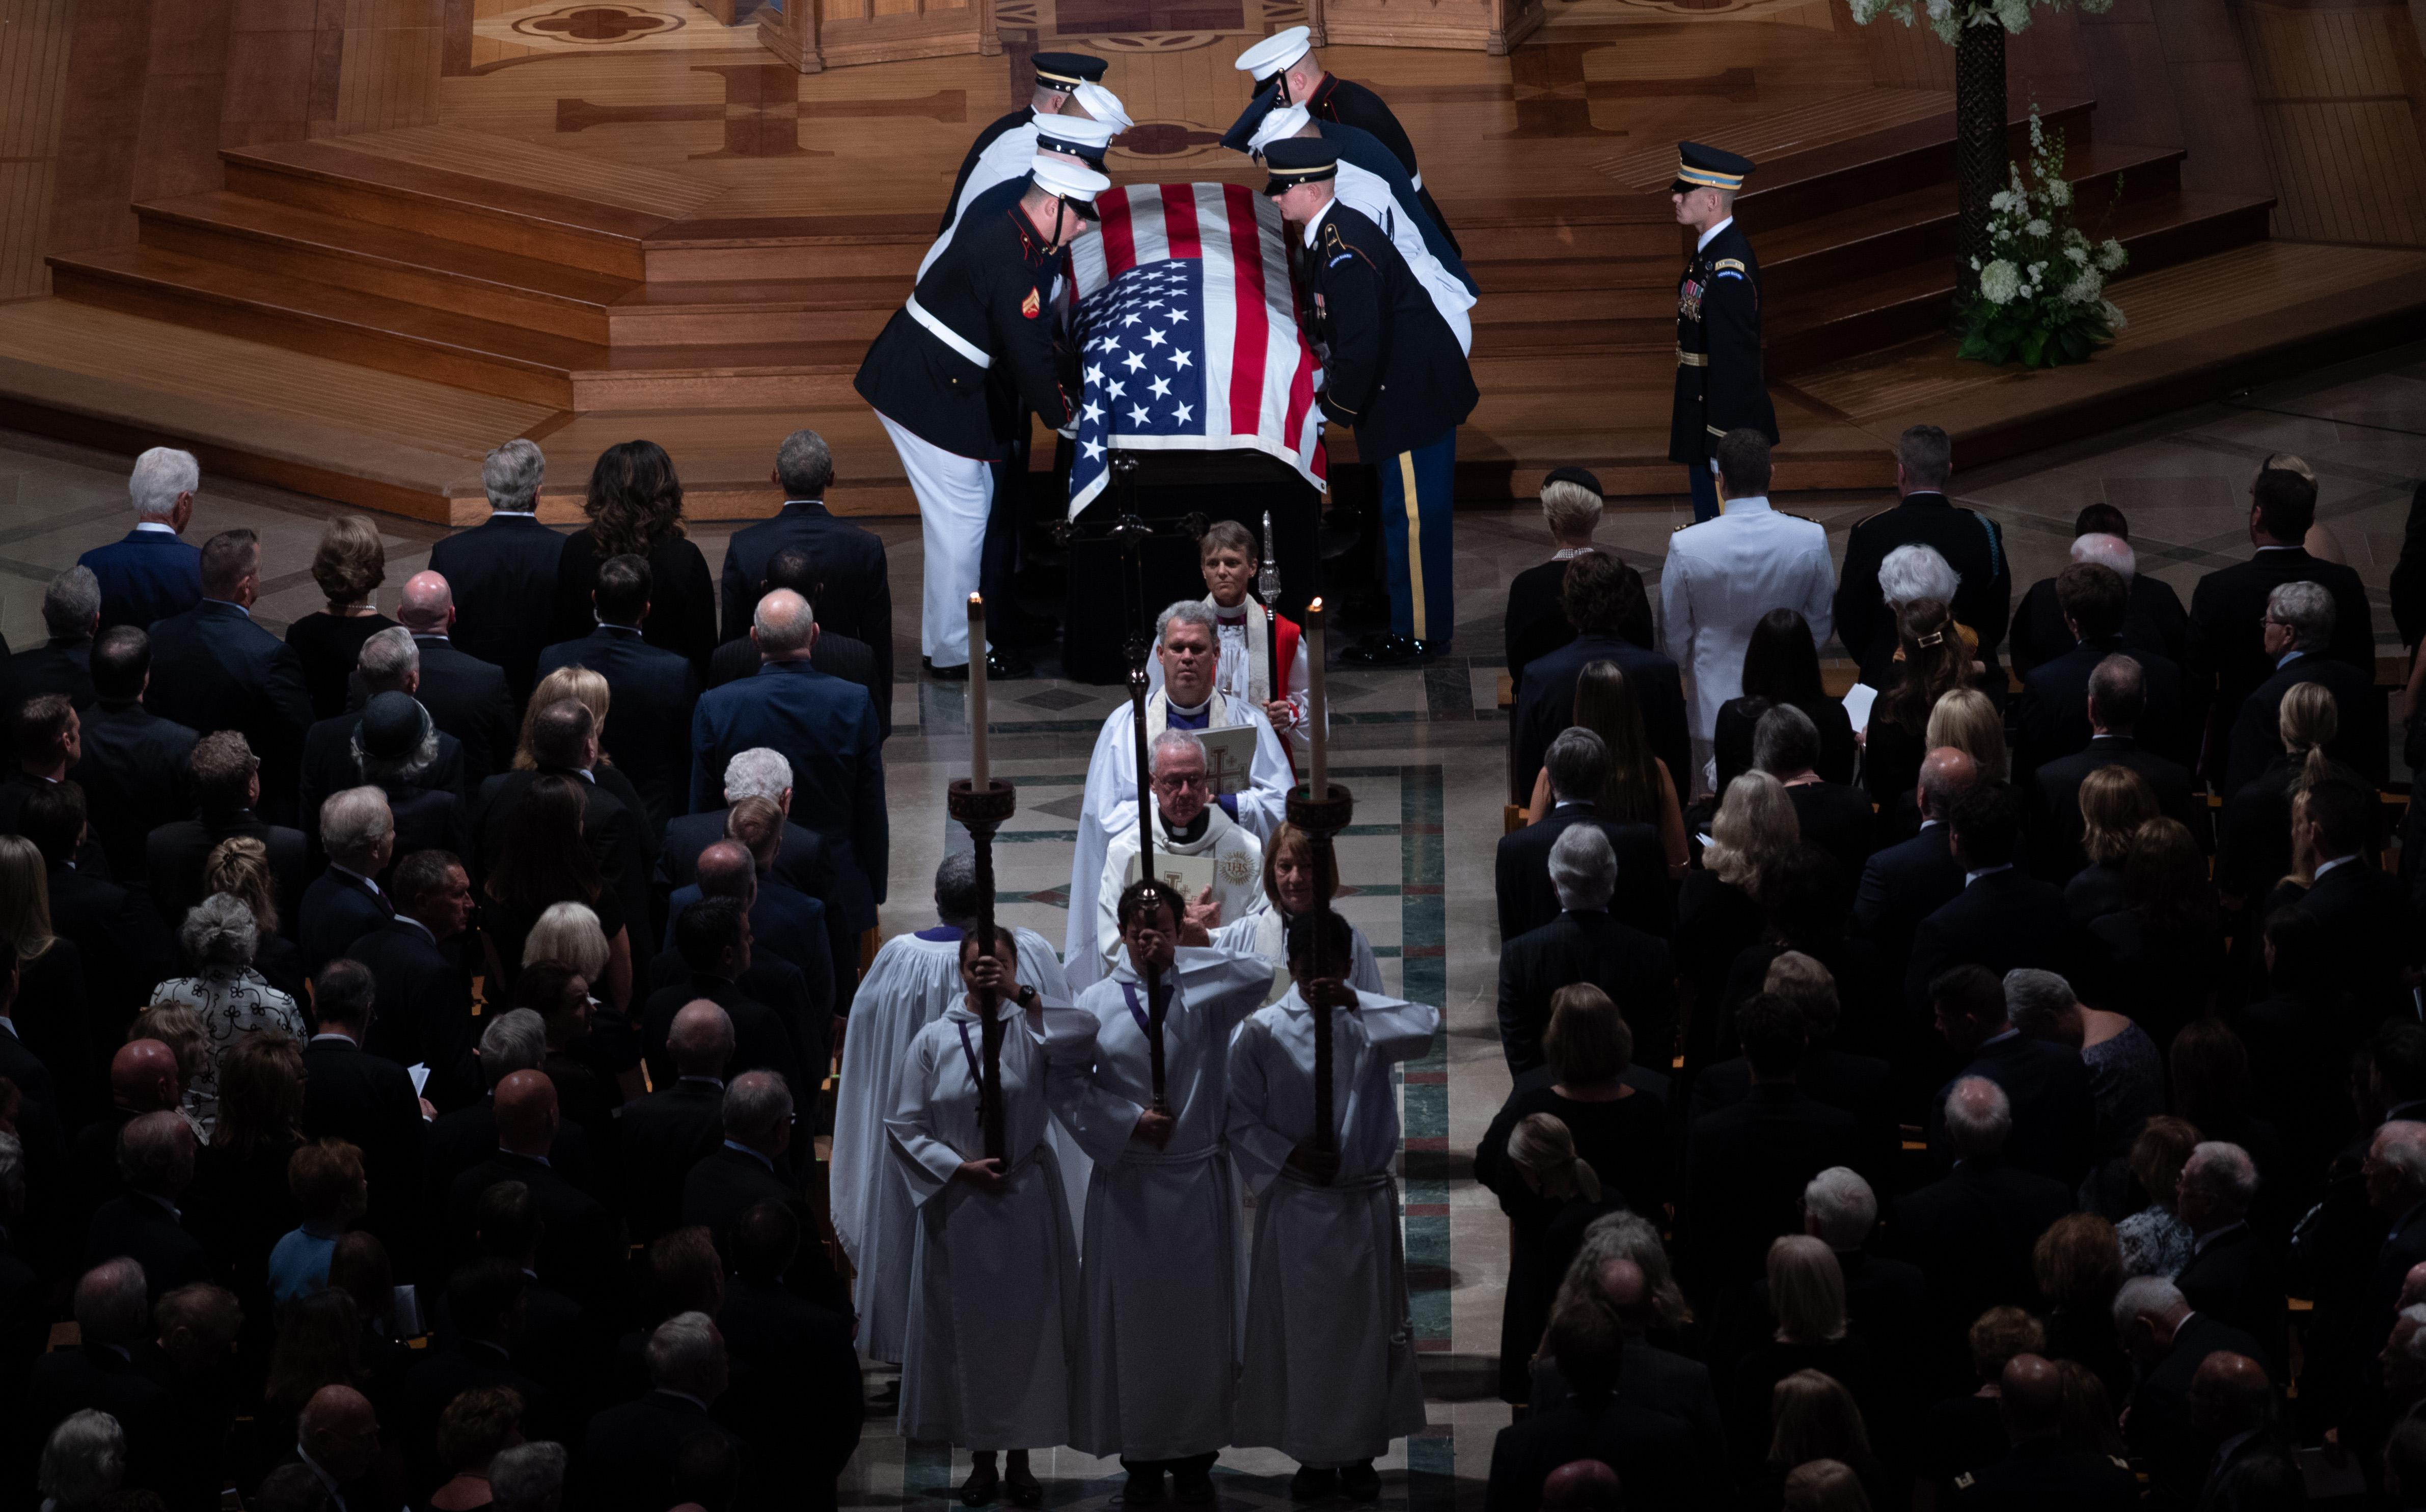 The casket of John McCain, carried out by a Military Honor Guard.